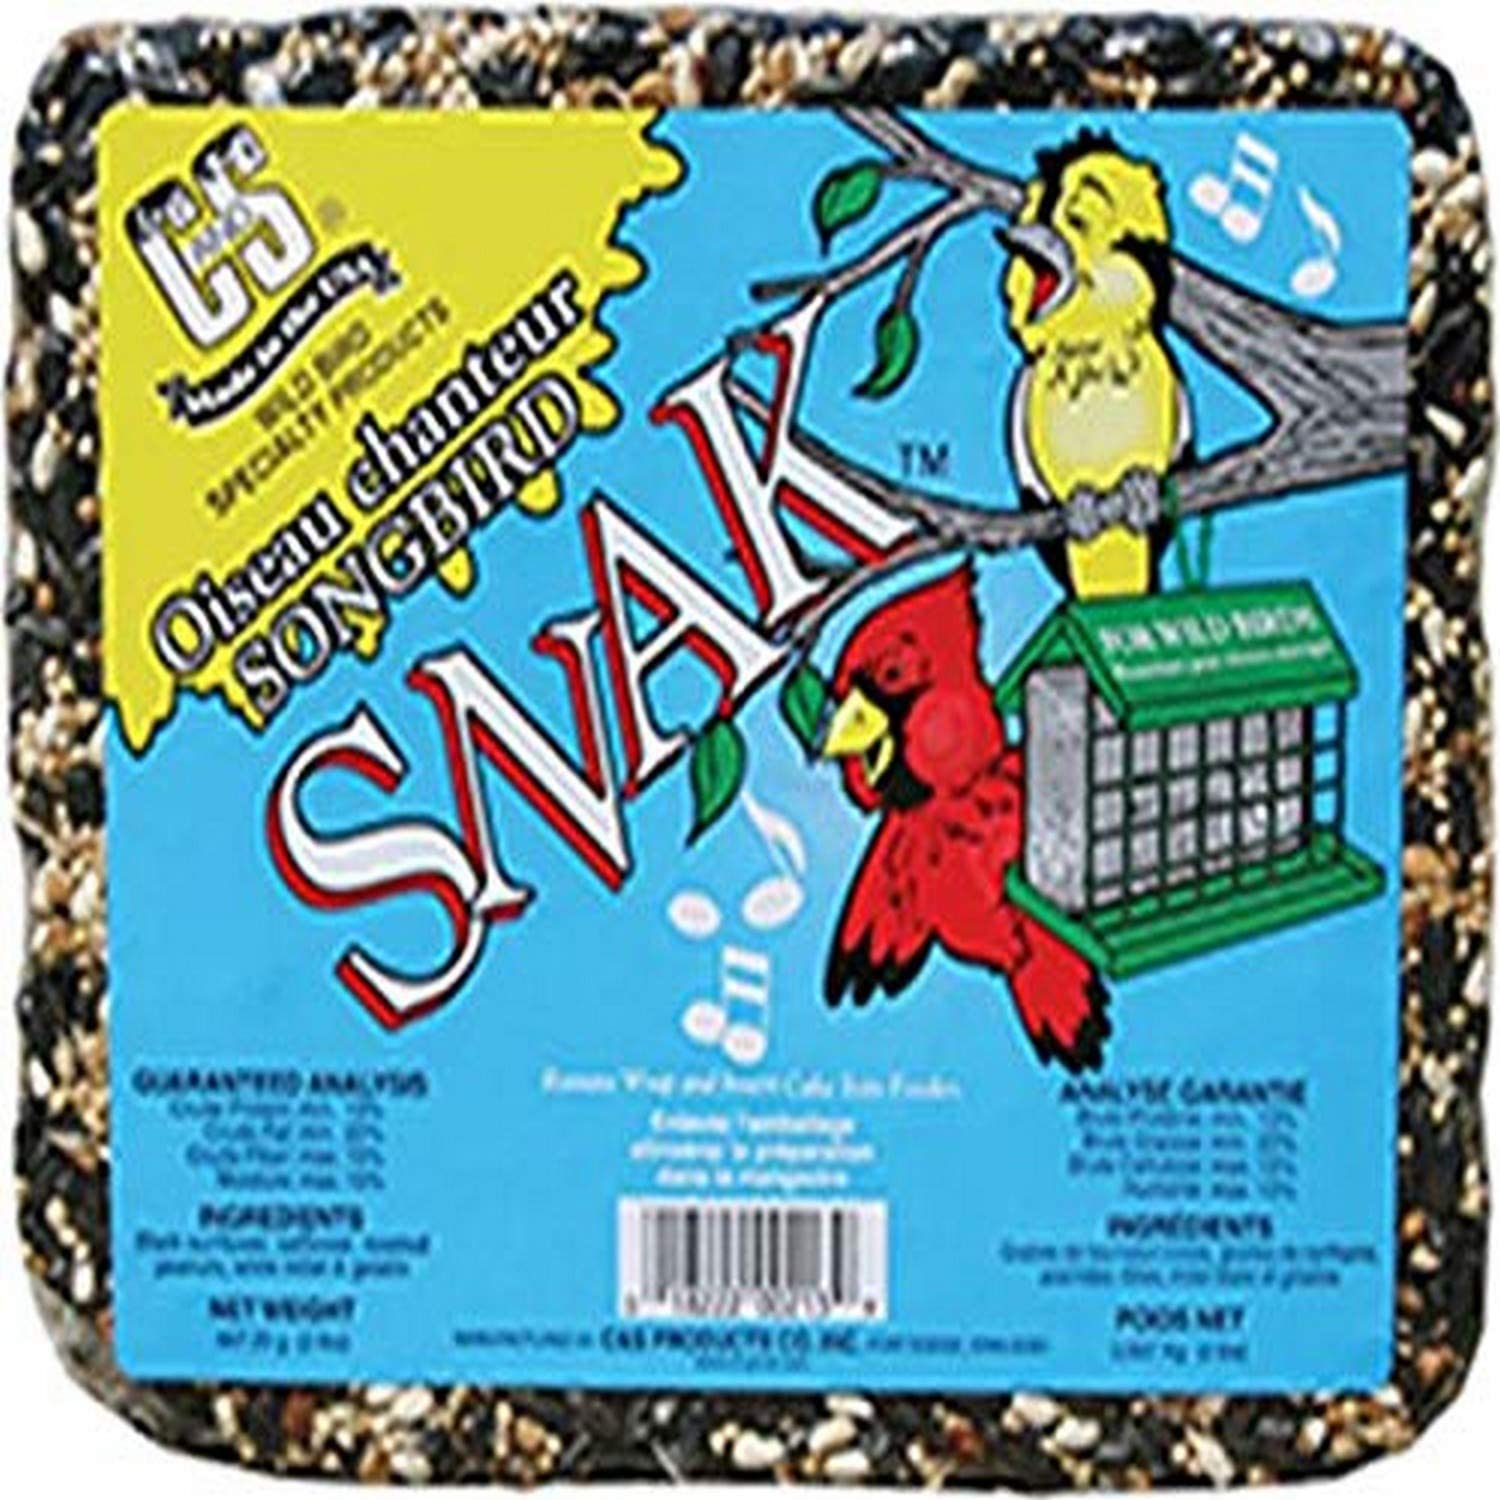 C & S CS06213 Songbird Snak, 2-Pound with Peanut Suet Nuggets